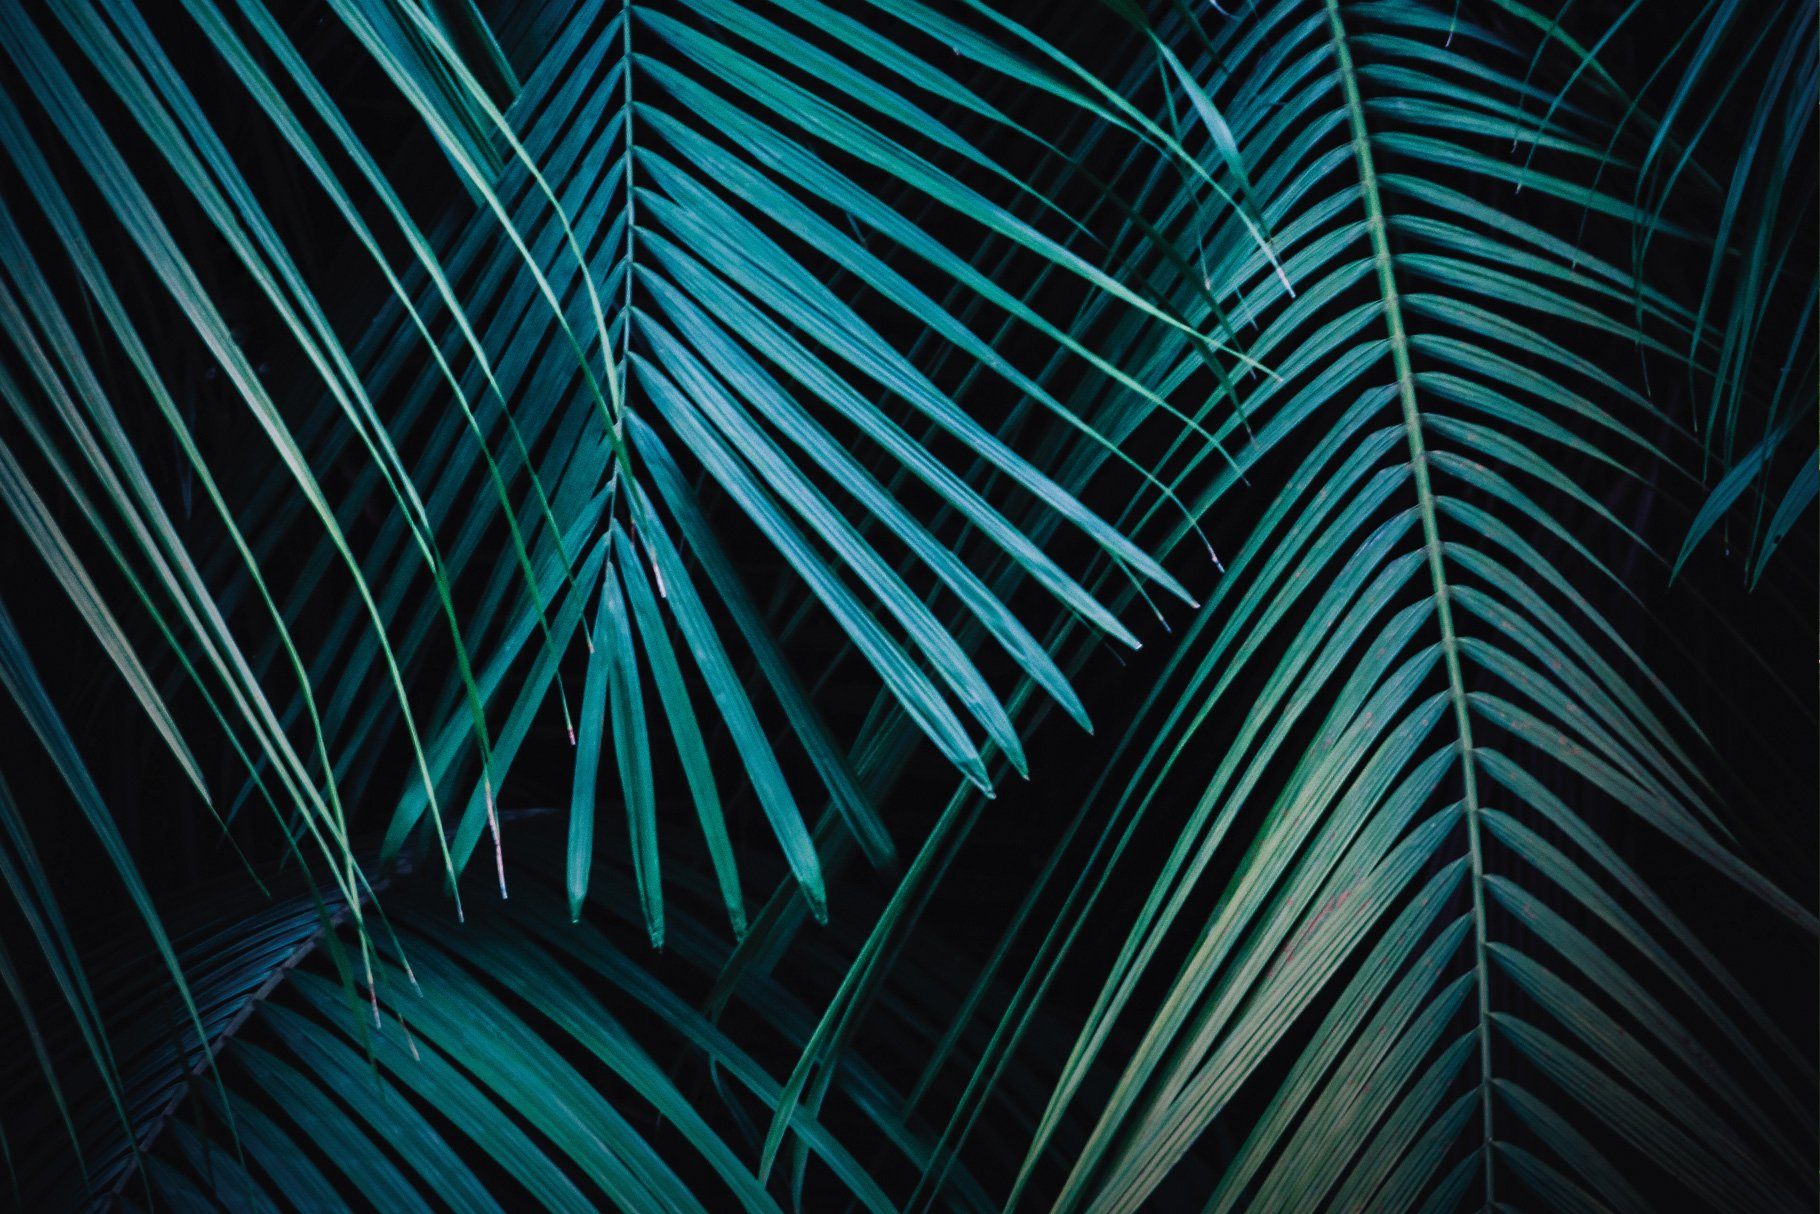 Tropical Palm Leaves Background Containing Jungle Tropical And Foliage High Quality Nature Stock Photos Creative Market Are you looking for tropical leaves background design images templates psd or png vectors files? tropical palm leaves background containing jungle tropical and foliage